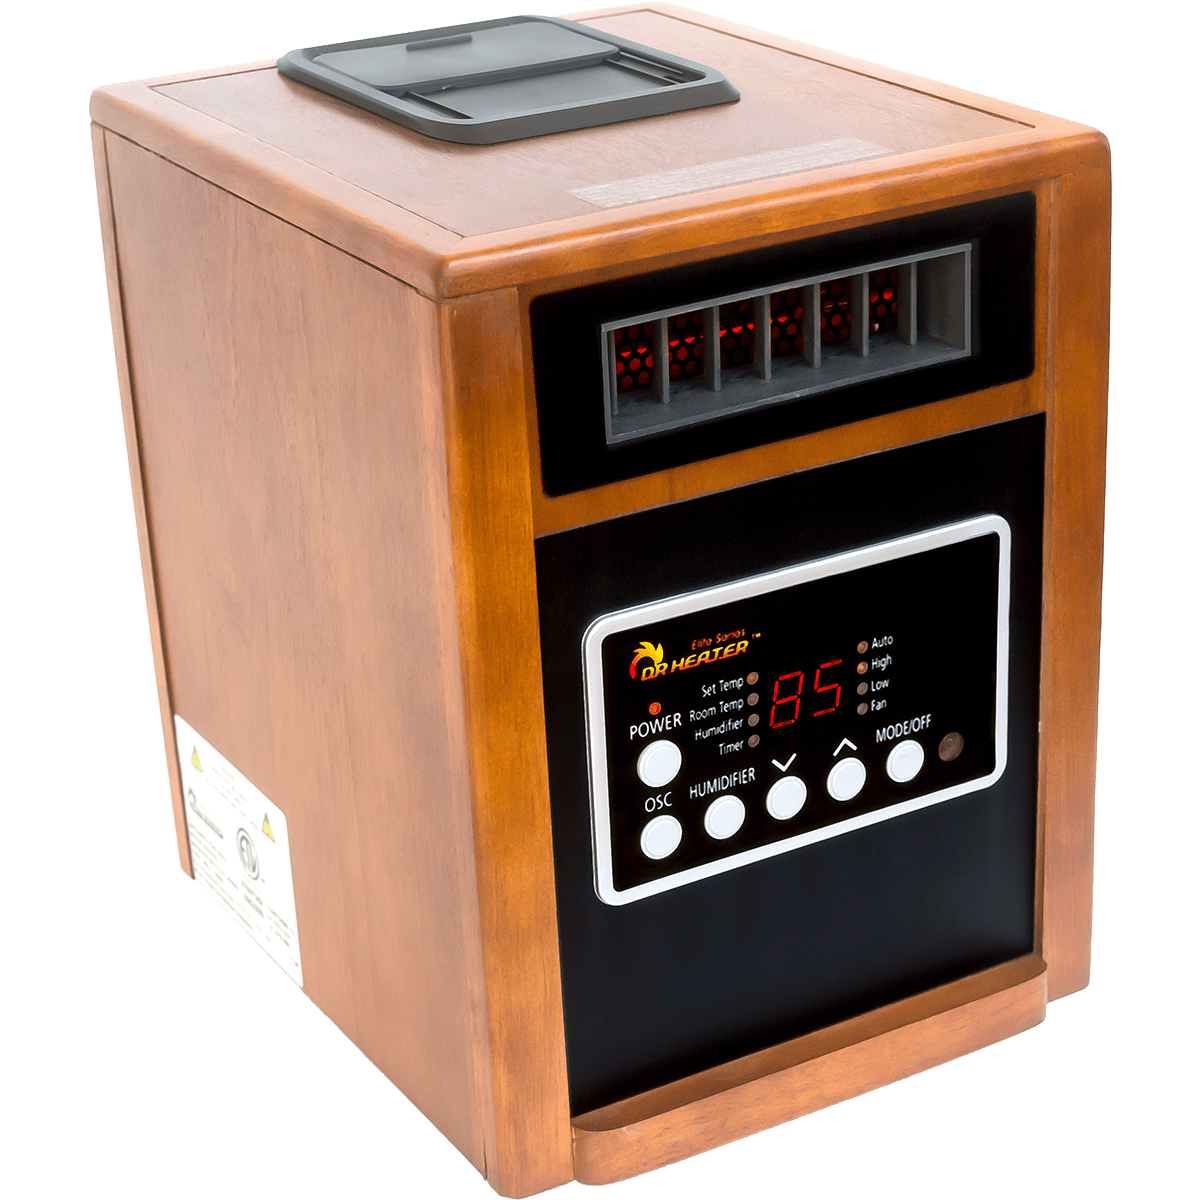 Dr. Infrared Heater DR998 Elite Series Space Heater + Humidifier Model: DR-998